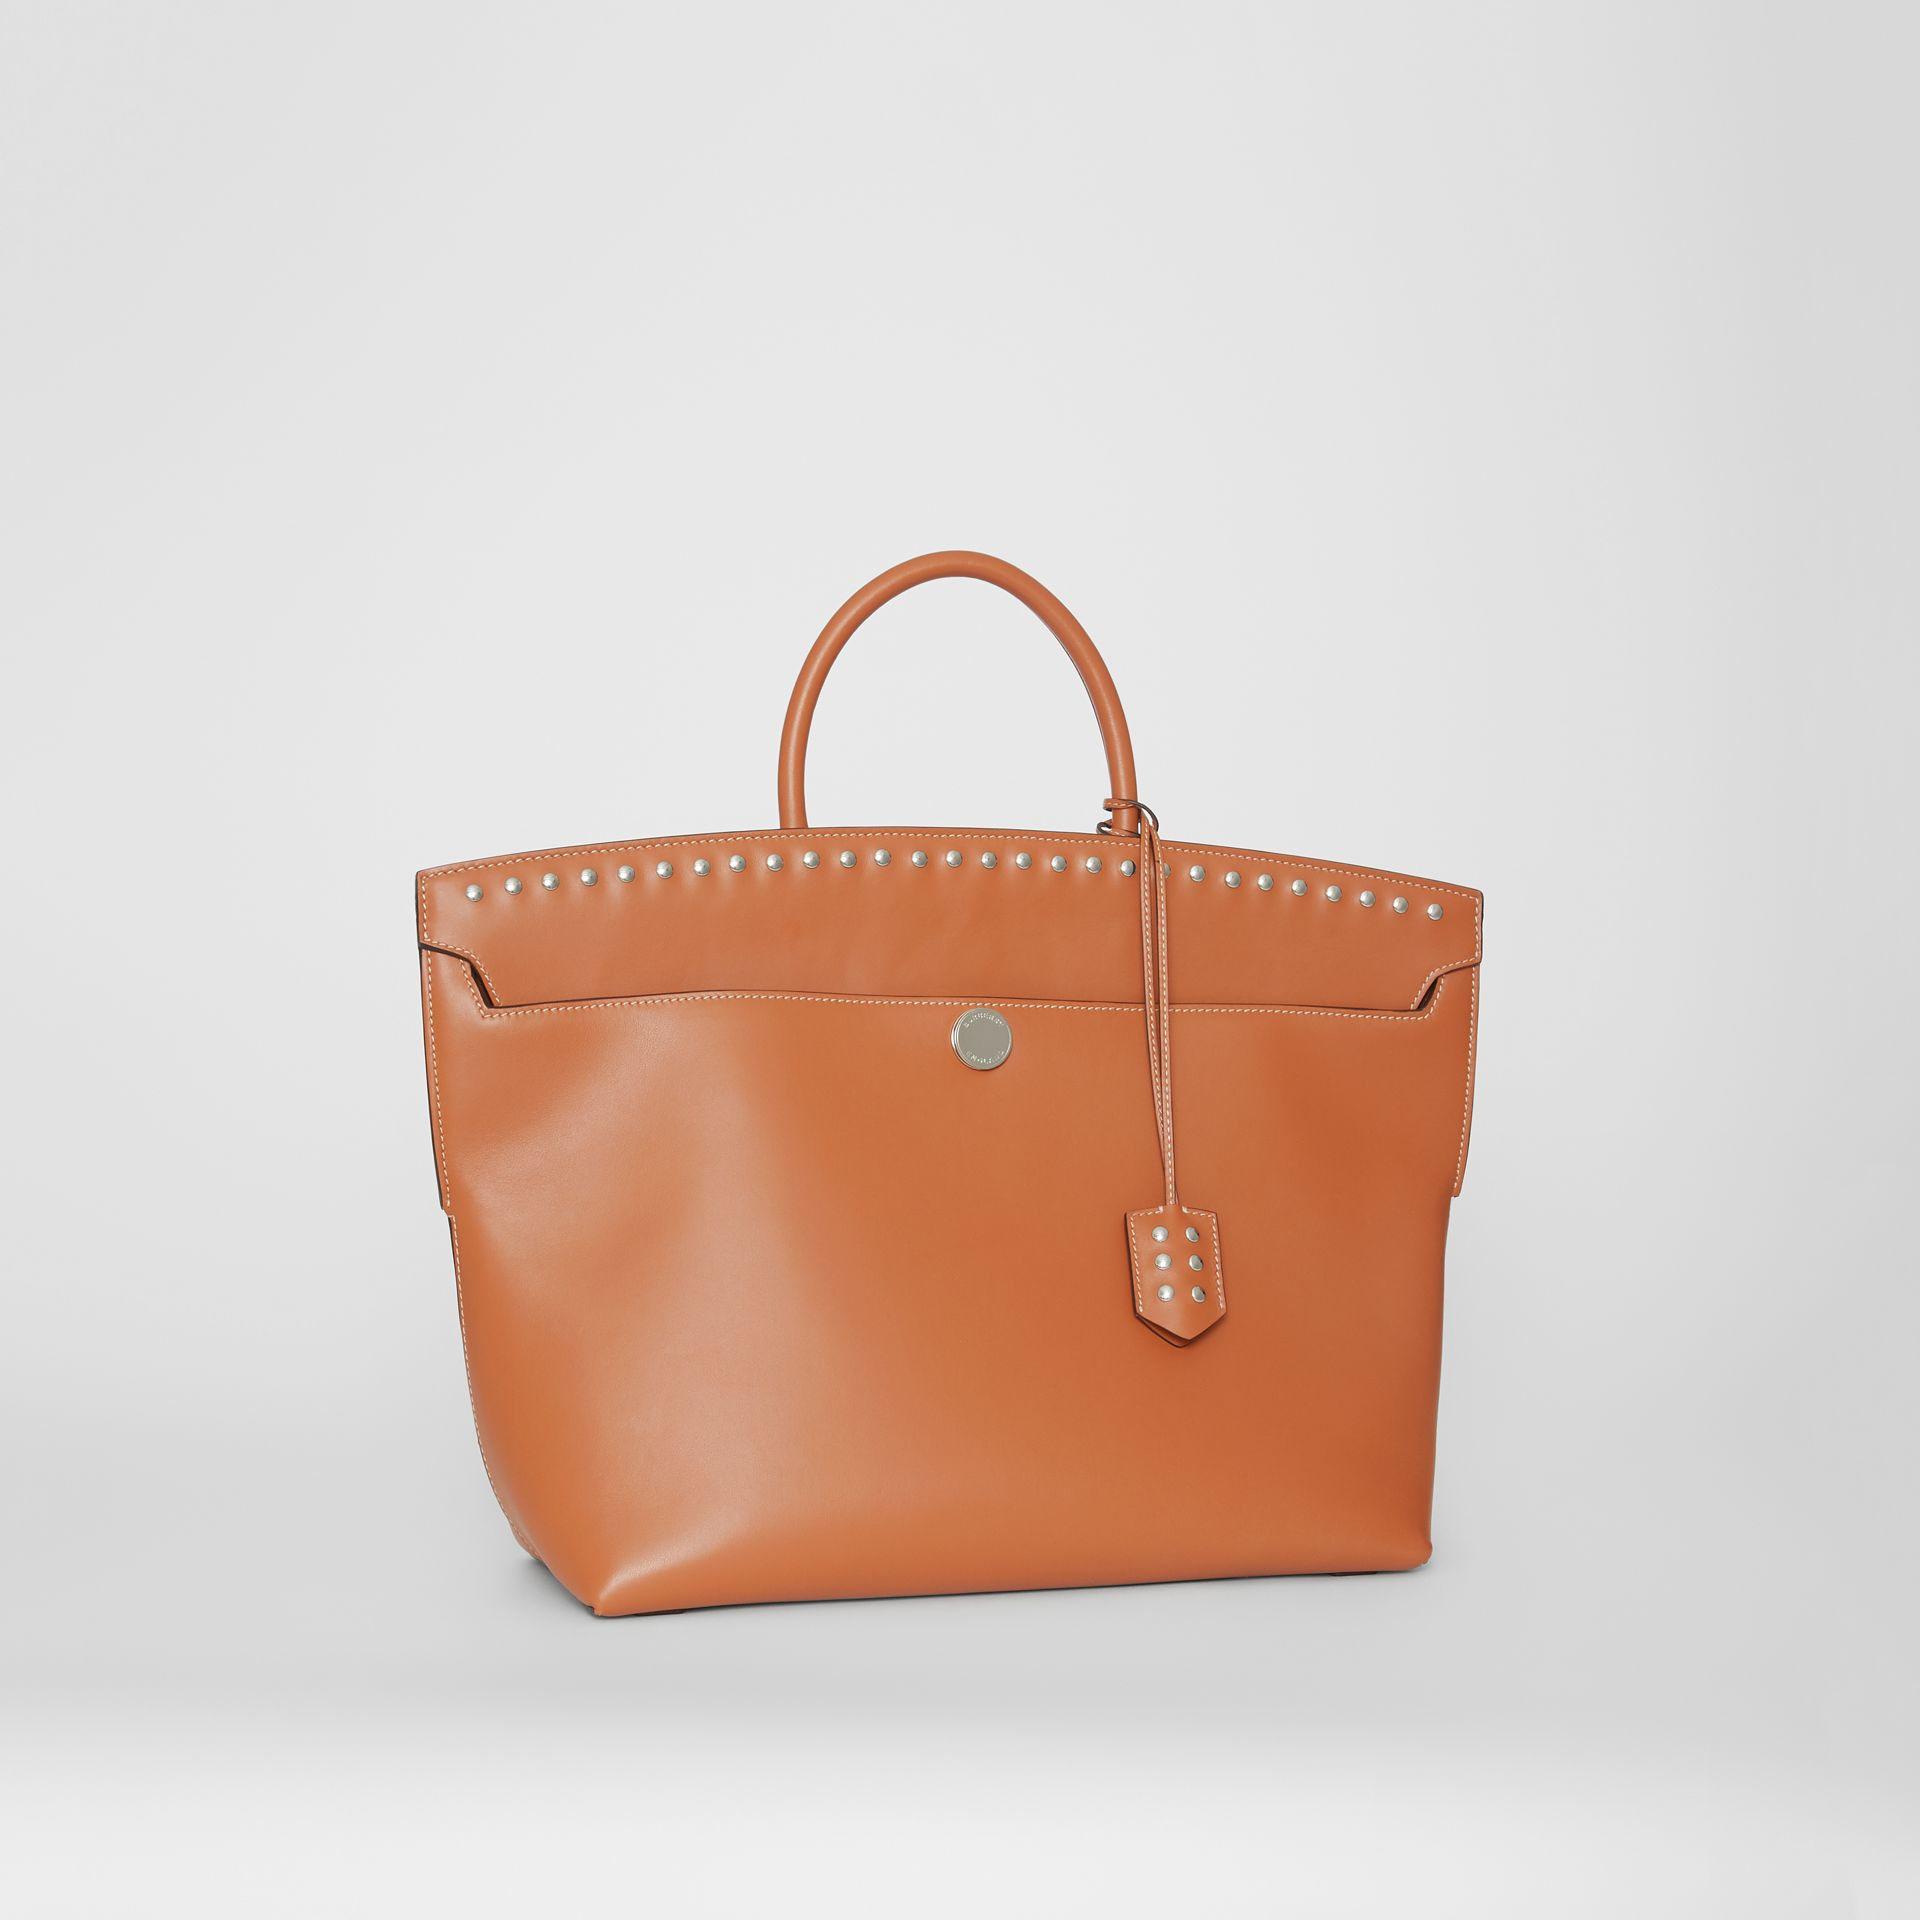 Studded Leather Society Top Handle Bag in Copper Brown - Women | Burberry United Kingdom - gallery image 6